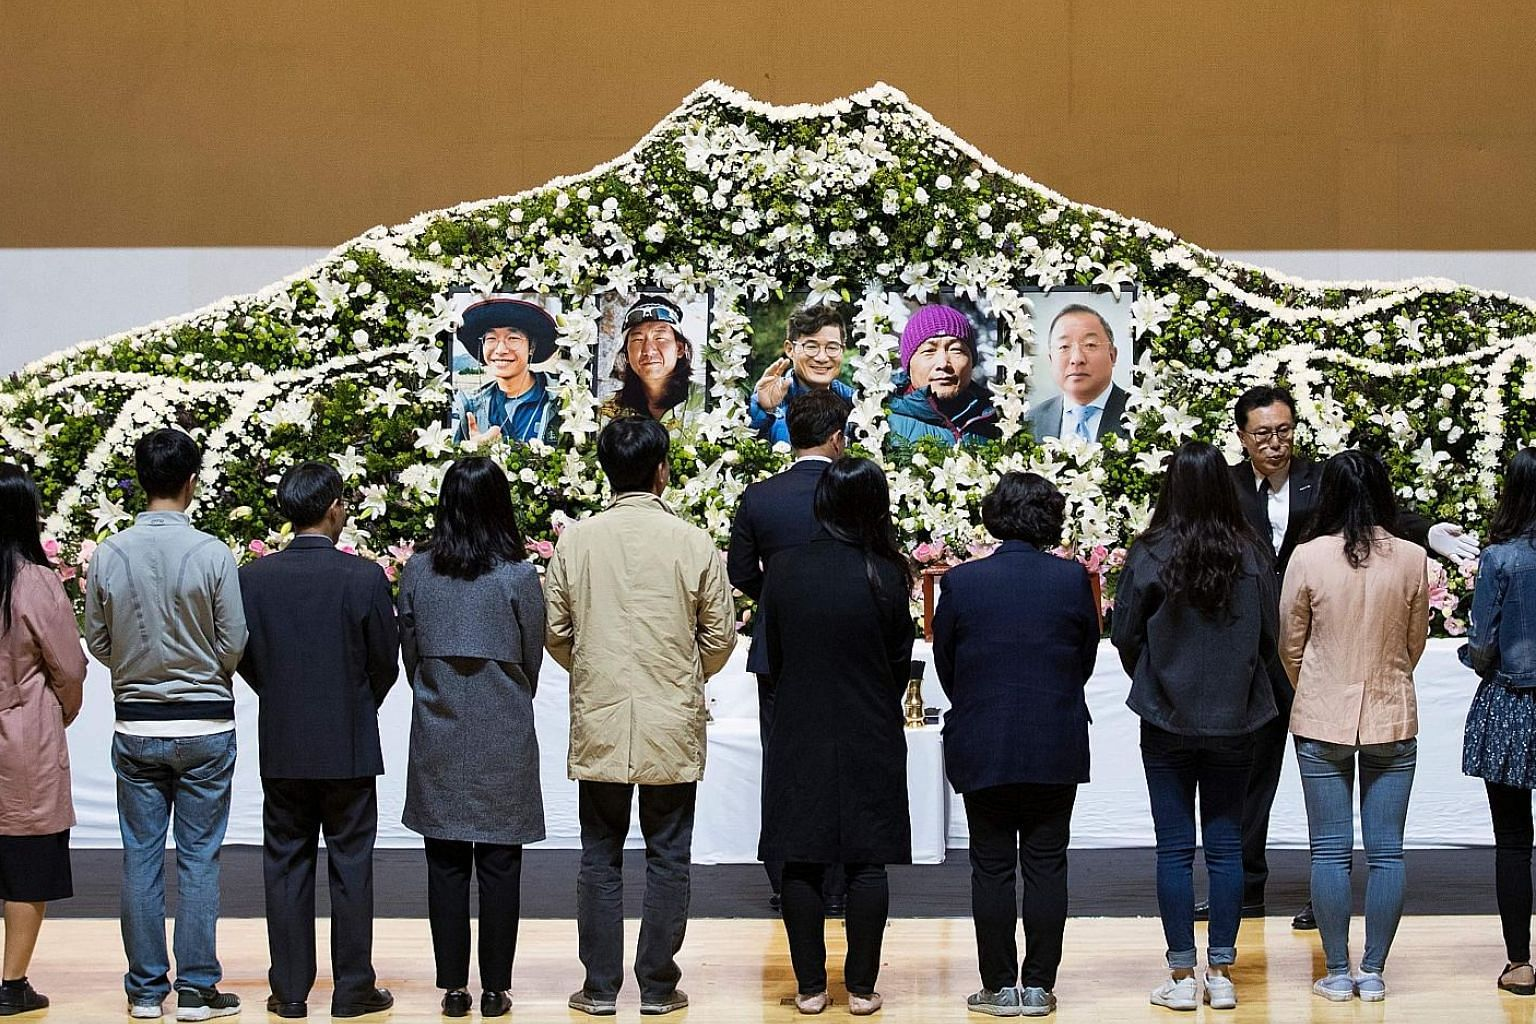 Mourners pay their respects to the five South Korean climbers led by renowned mountaineer Kim Chang-ho (centre) in Seoul. The team was trying to blaze a new route on the south face of Mount Gurja, a 7,193m-high peak located about 216km north-west of